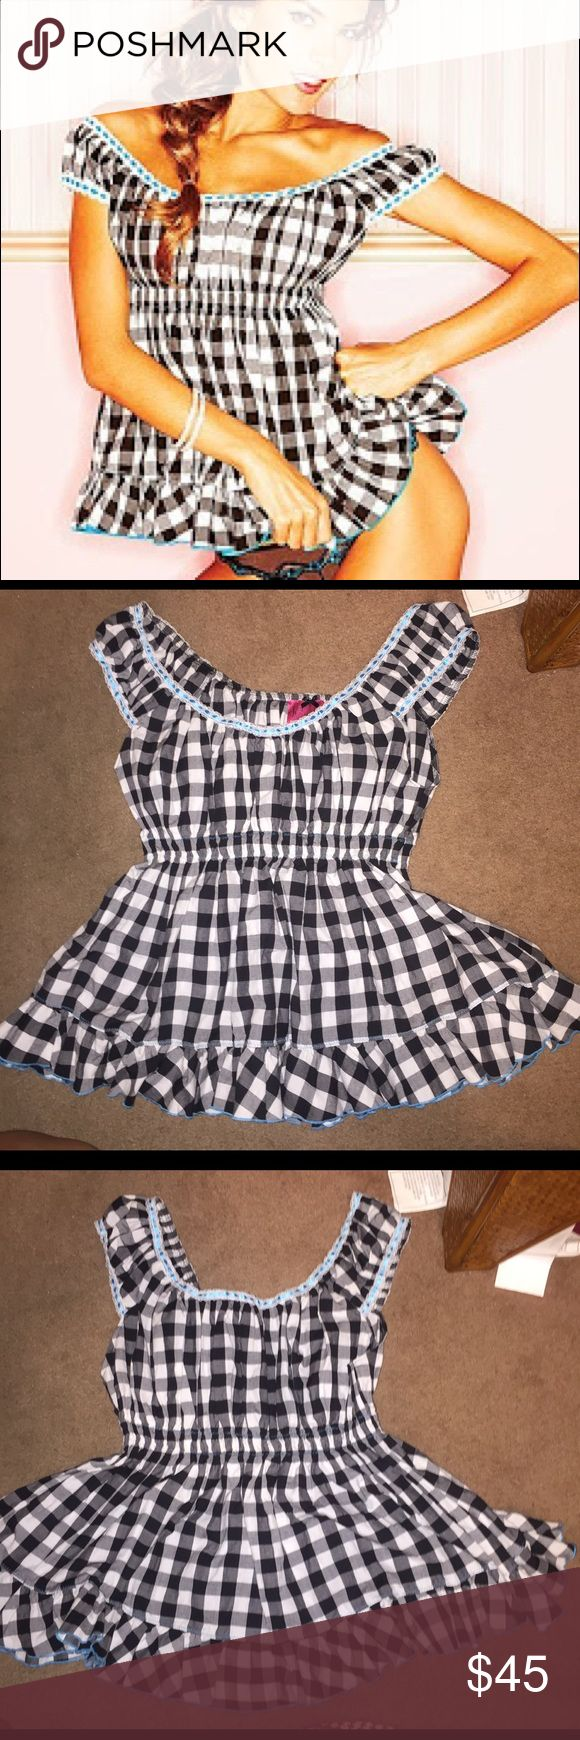 Victoria's Secret Gingham Off-the-Shoulder Top Victoria's Secret Gingham Off-the-Shoulder Top From 'Sexy Little Things' Collection Gingham Babydoll Cut Can be worn normal babydoll style, or off shoulder  Color: Checkered Plaid Gingham Size: M/L   Used for photoshoot  Pinup burlesque Victoria's Secret Intimates & Sleepwear